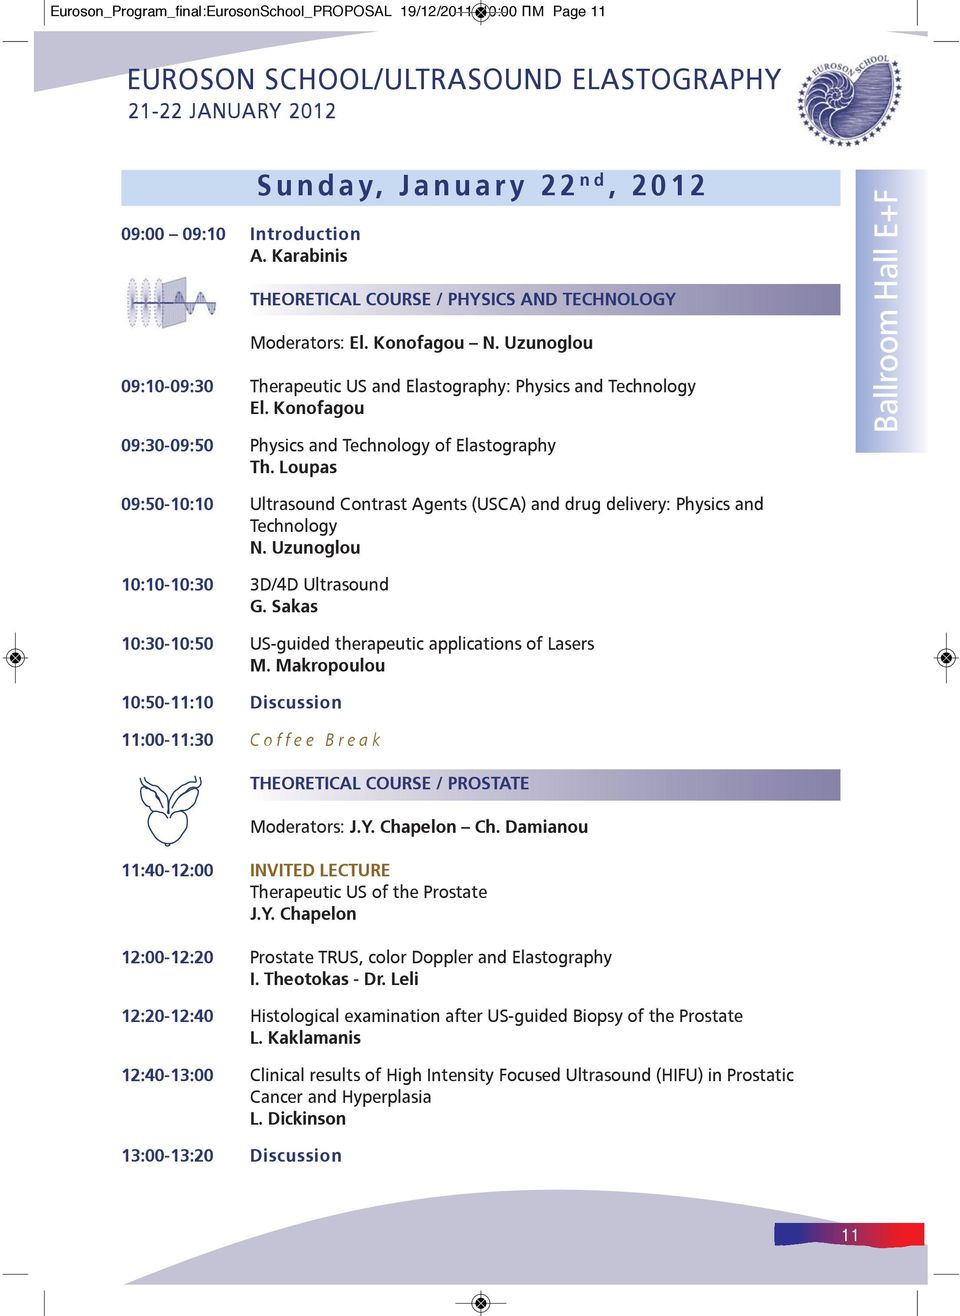 Loupas Ballroom Hall E+F 09:50-10:10 Ultrasound Contrast Agents (USCA) and drug delivery: Physics and Technology Ν. Uzunoglou 10:10-10:30 3D/4D Ultrasound G.